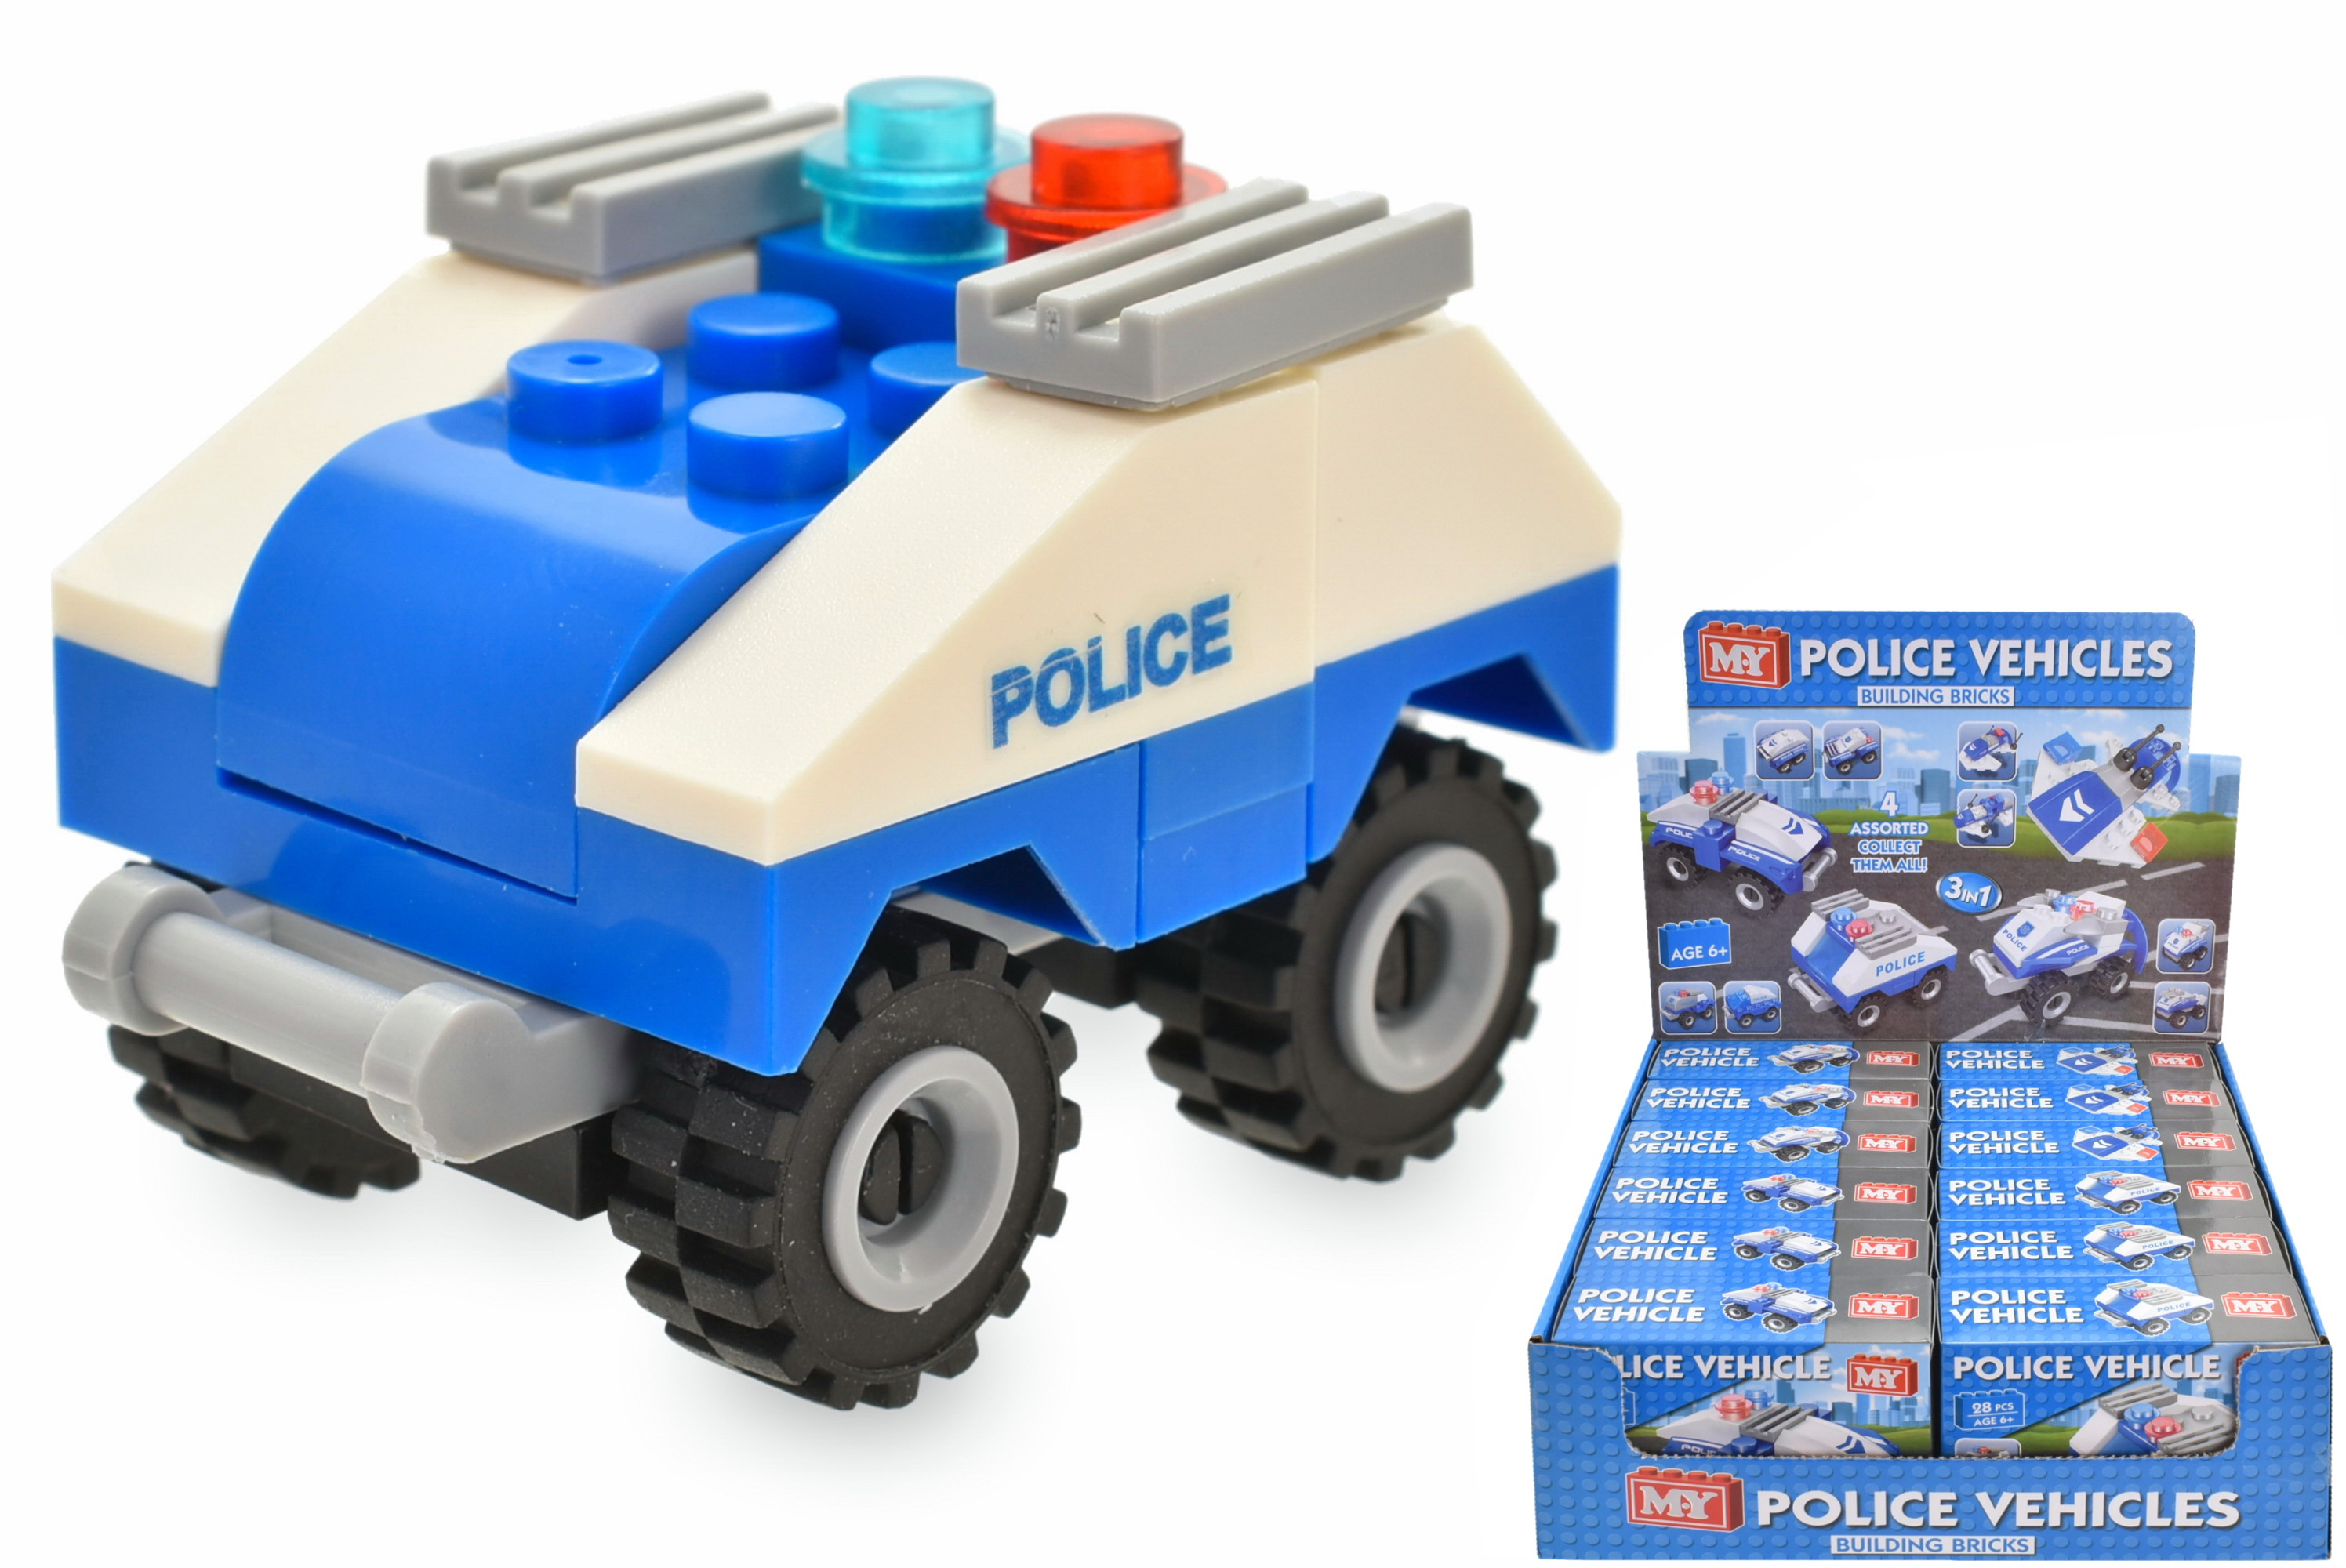 Police Vehicle (4 Asst) Brick Sets In Colour Box